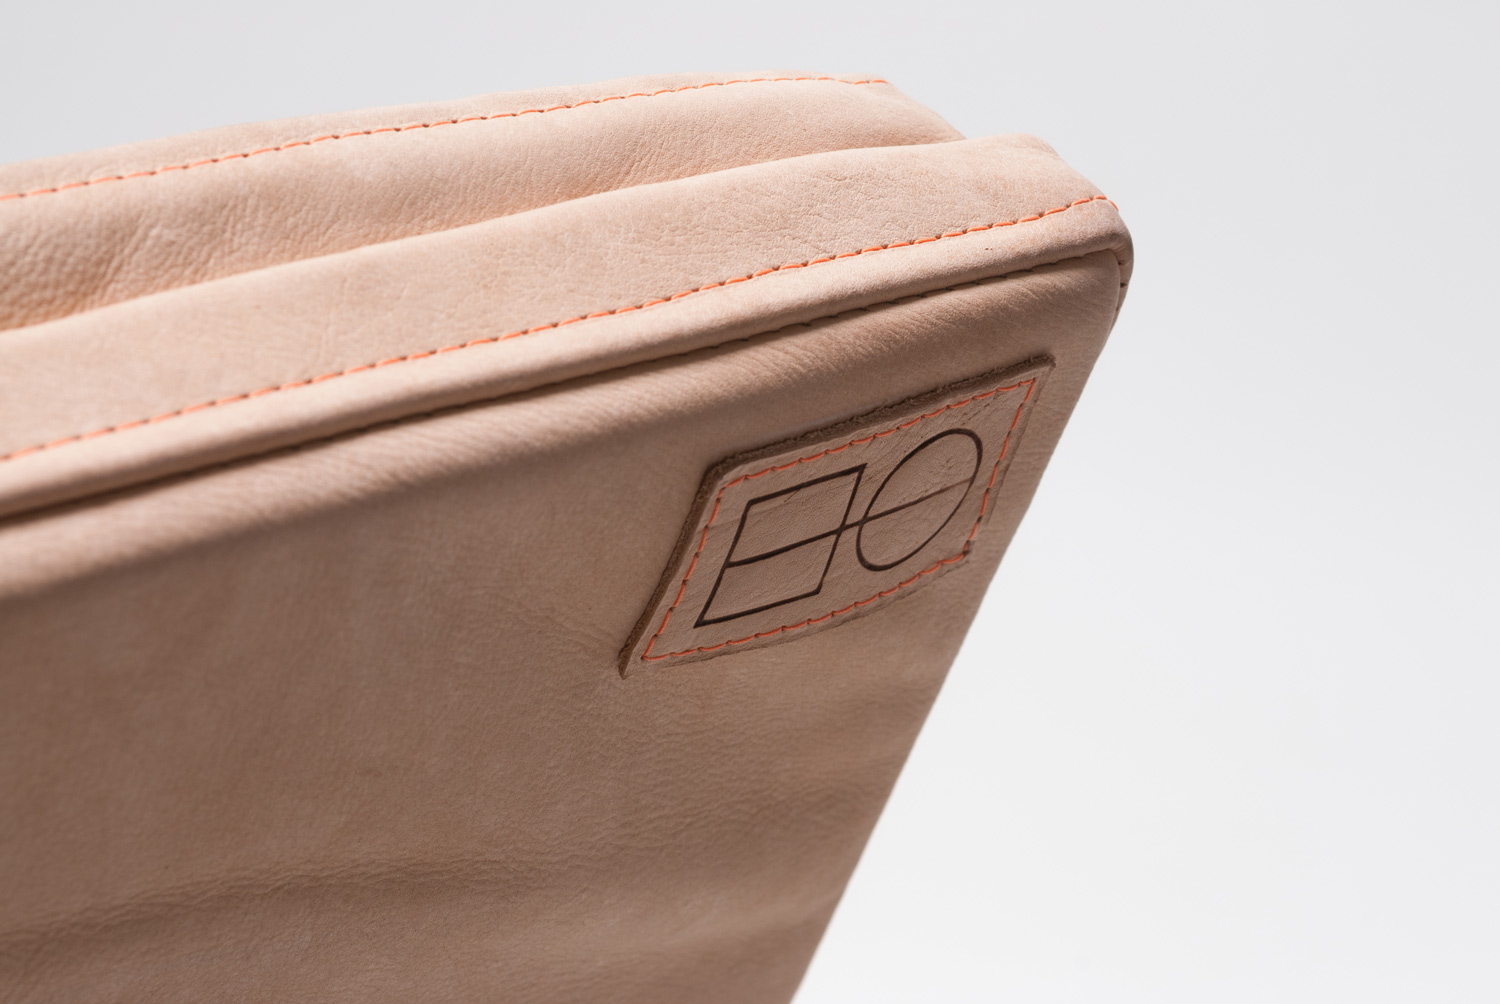 The Hard Goods logo branded into a leather seat cushion